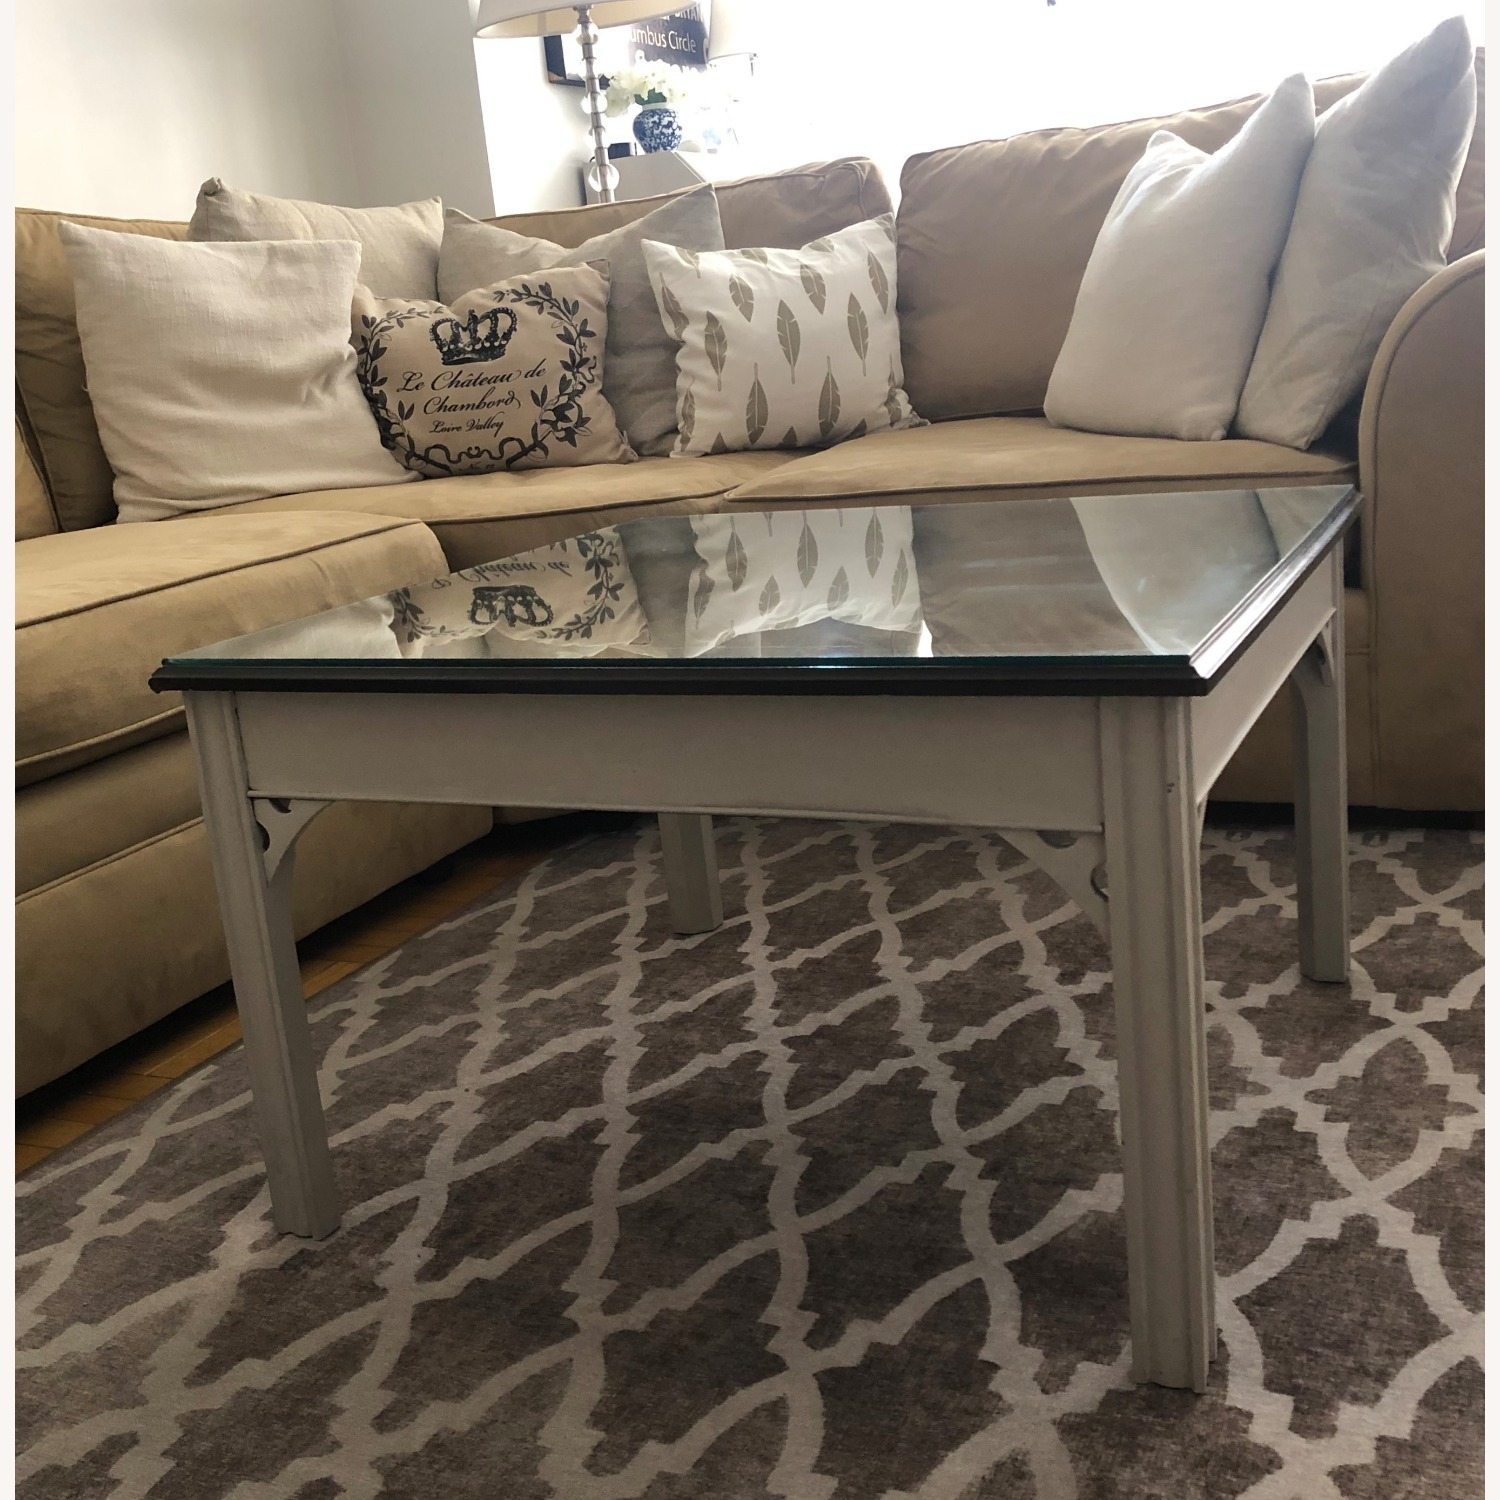 Antique Square Coffee Table - image-1